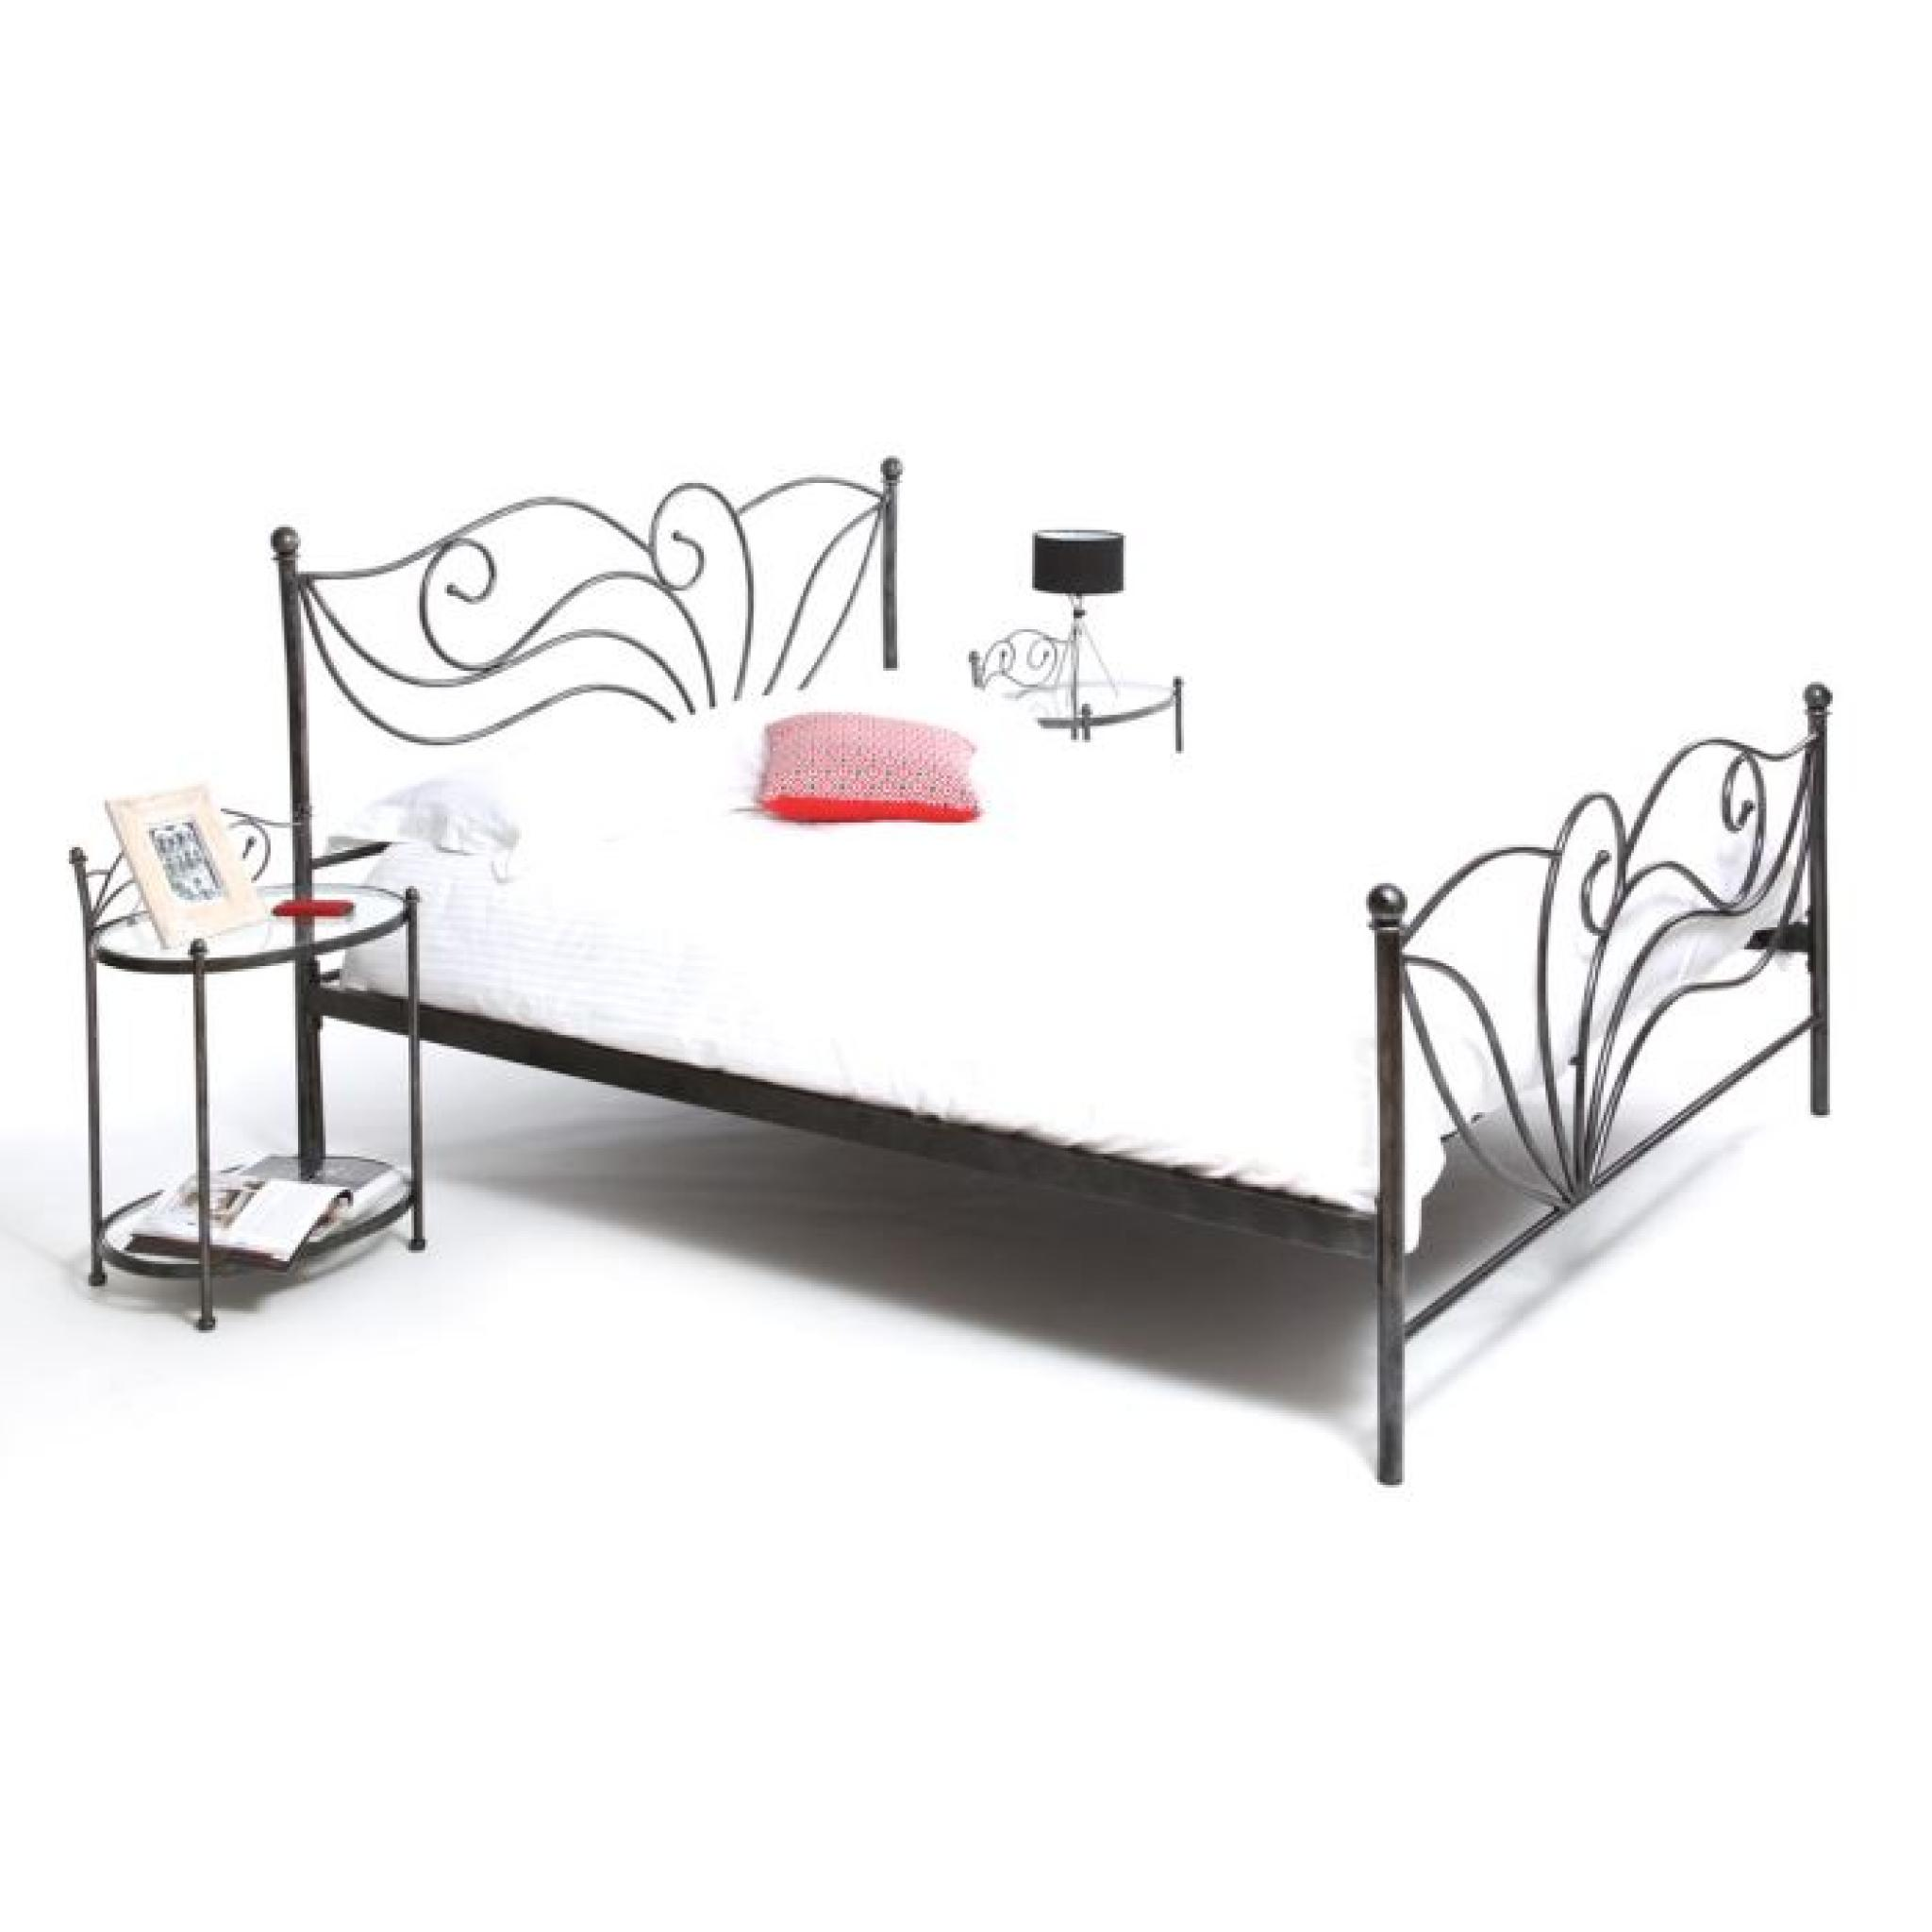 miliboo lit 160x200 baroque noir venezia achat vente lit pas cher couleur et. Black Bedroom Furniture Sets. Home Design Ideas